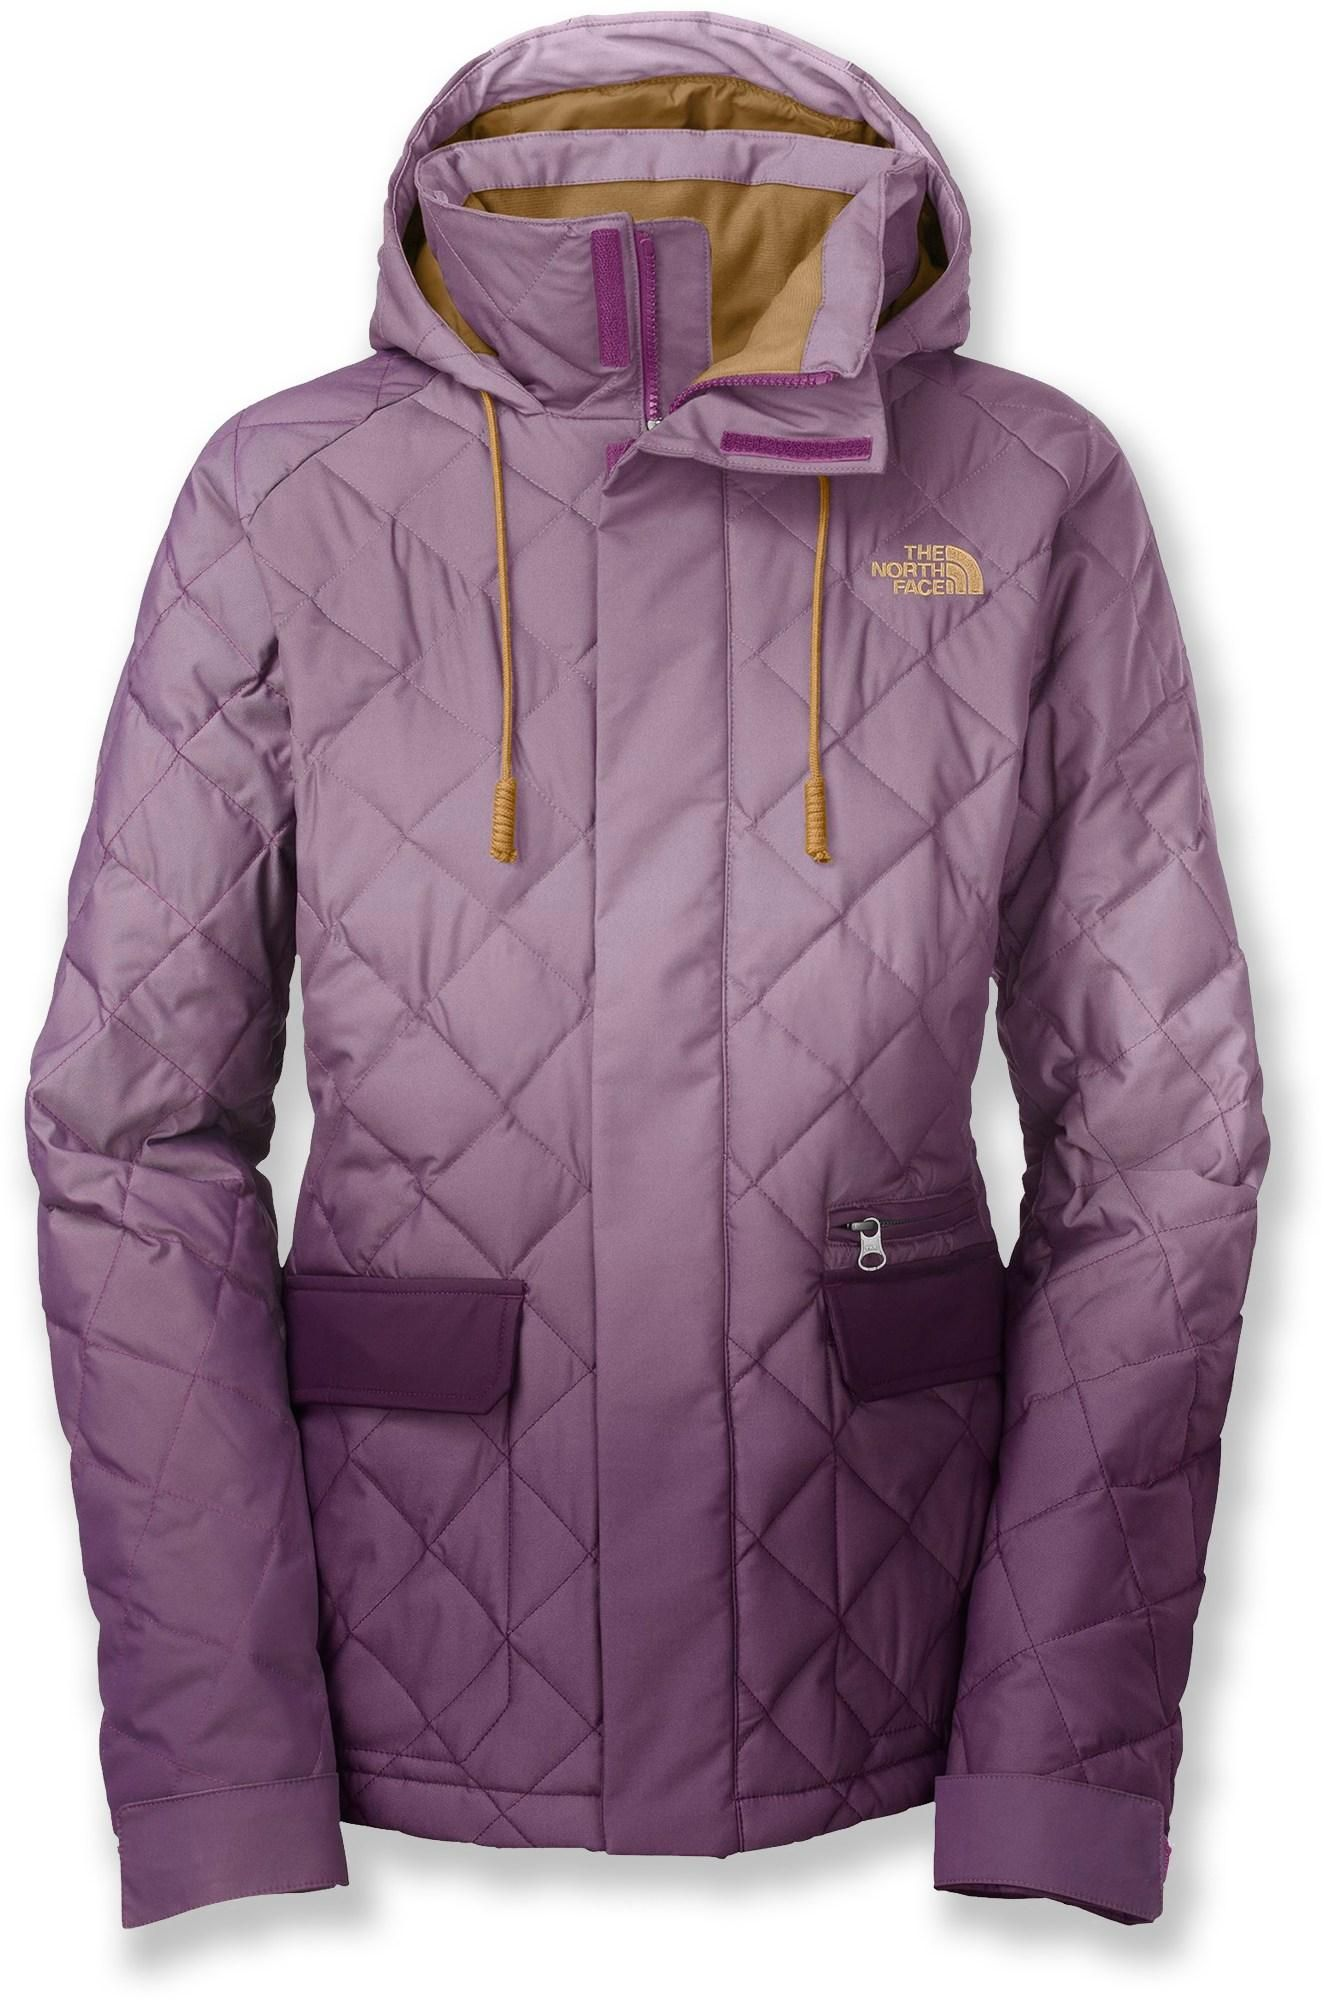 Ombre jacket! The North Face First Day Down Insulated Jacket - Women s. 8c41ef7a6